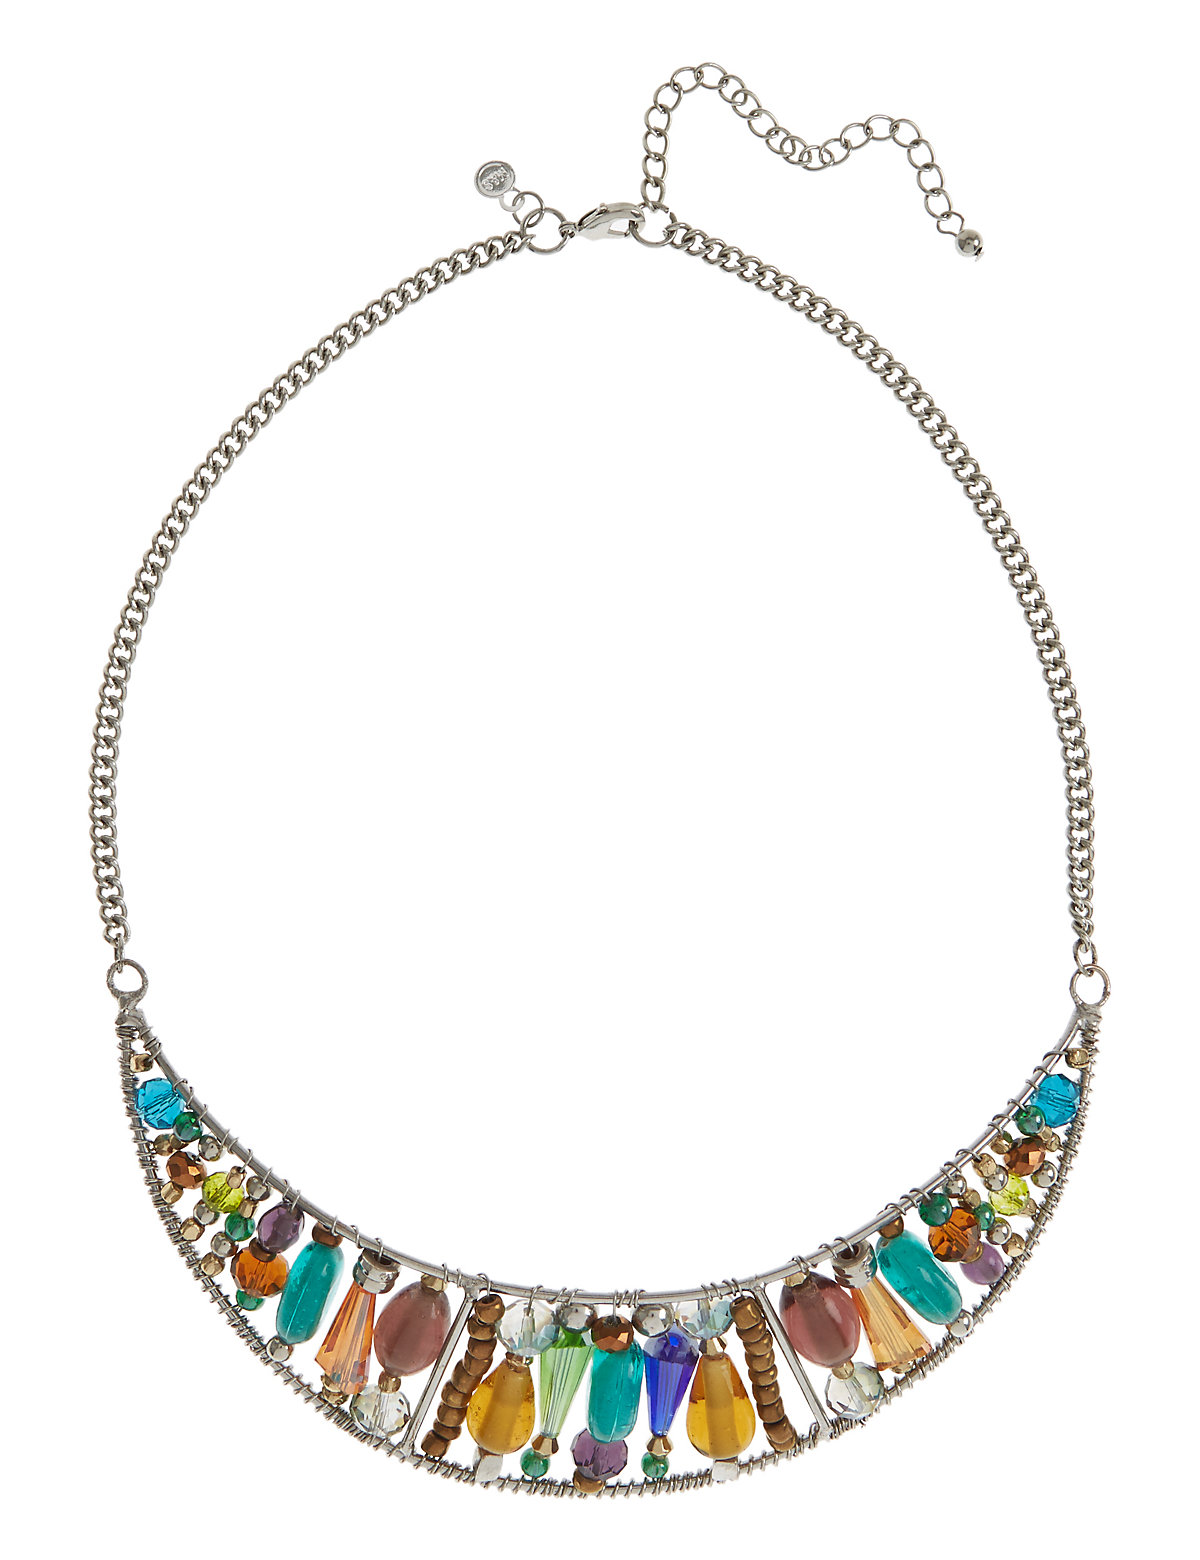 Torque Assorted Bead Necklace Multi Coloured One Size